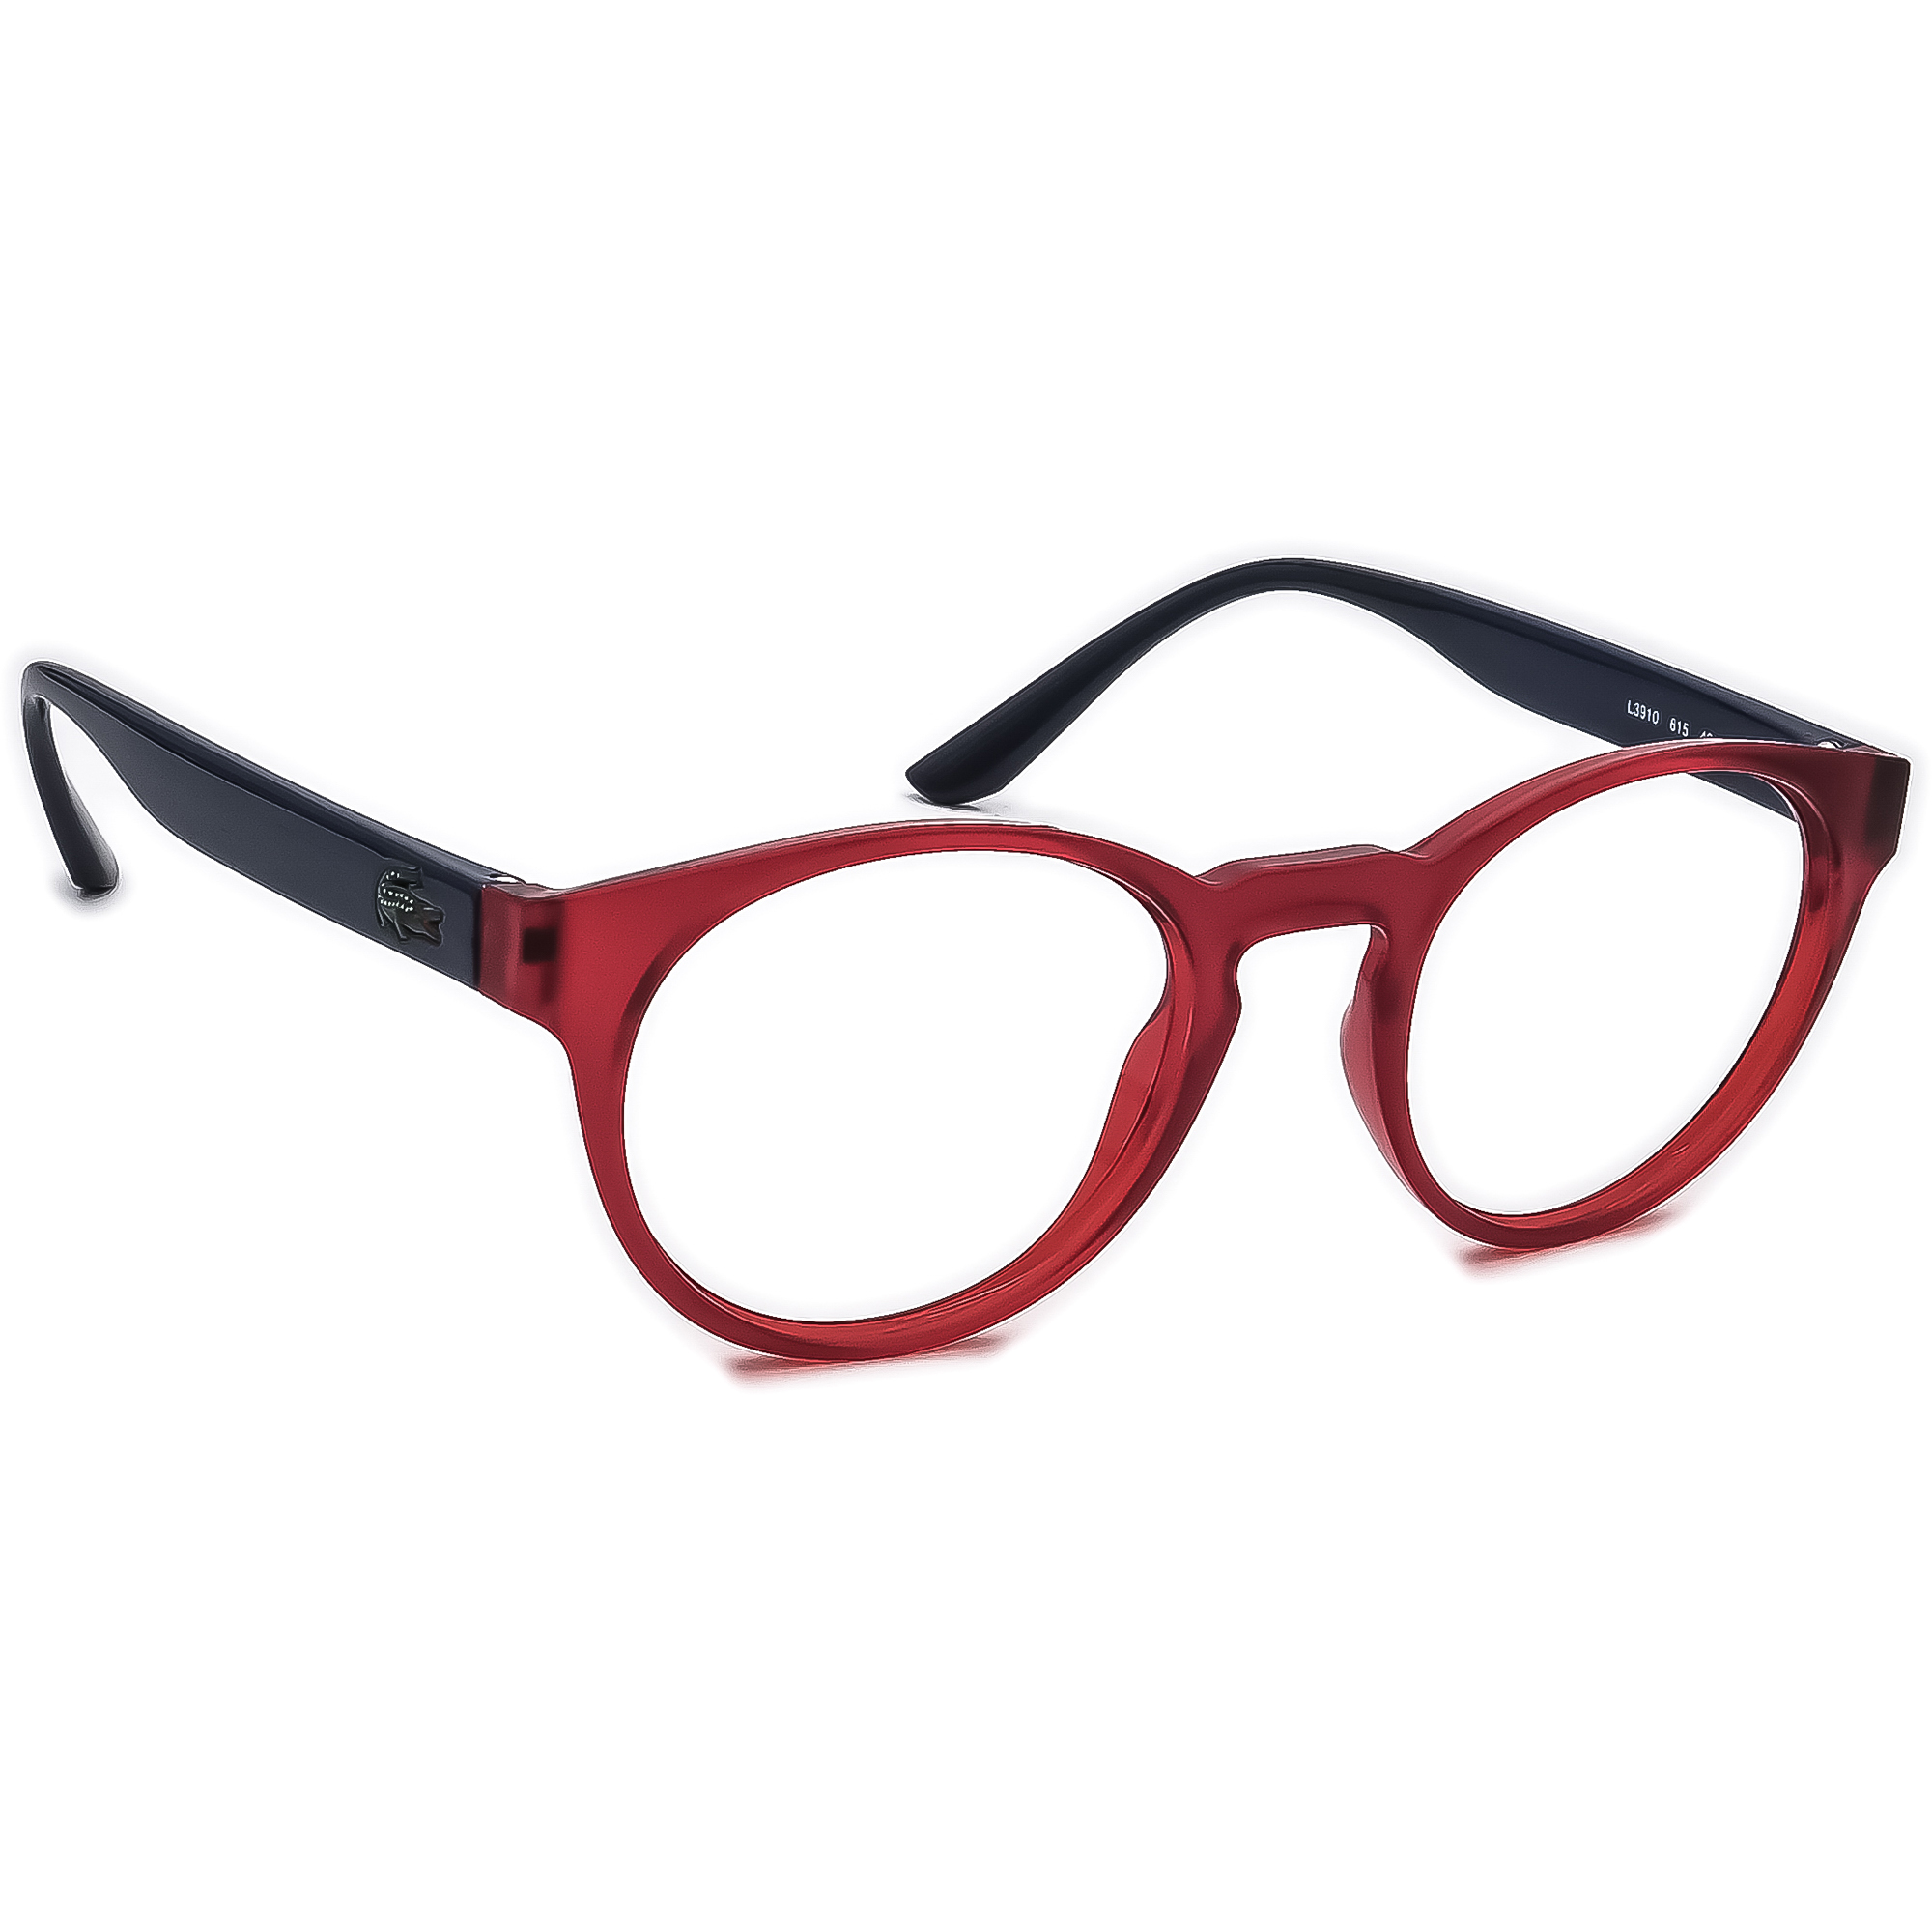 Lacoste Eyeglasses L3910 615 Red/Blue Round Frame Italy 46[]19 140 Small